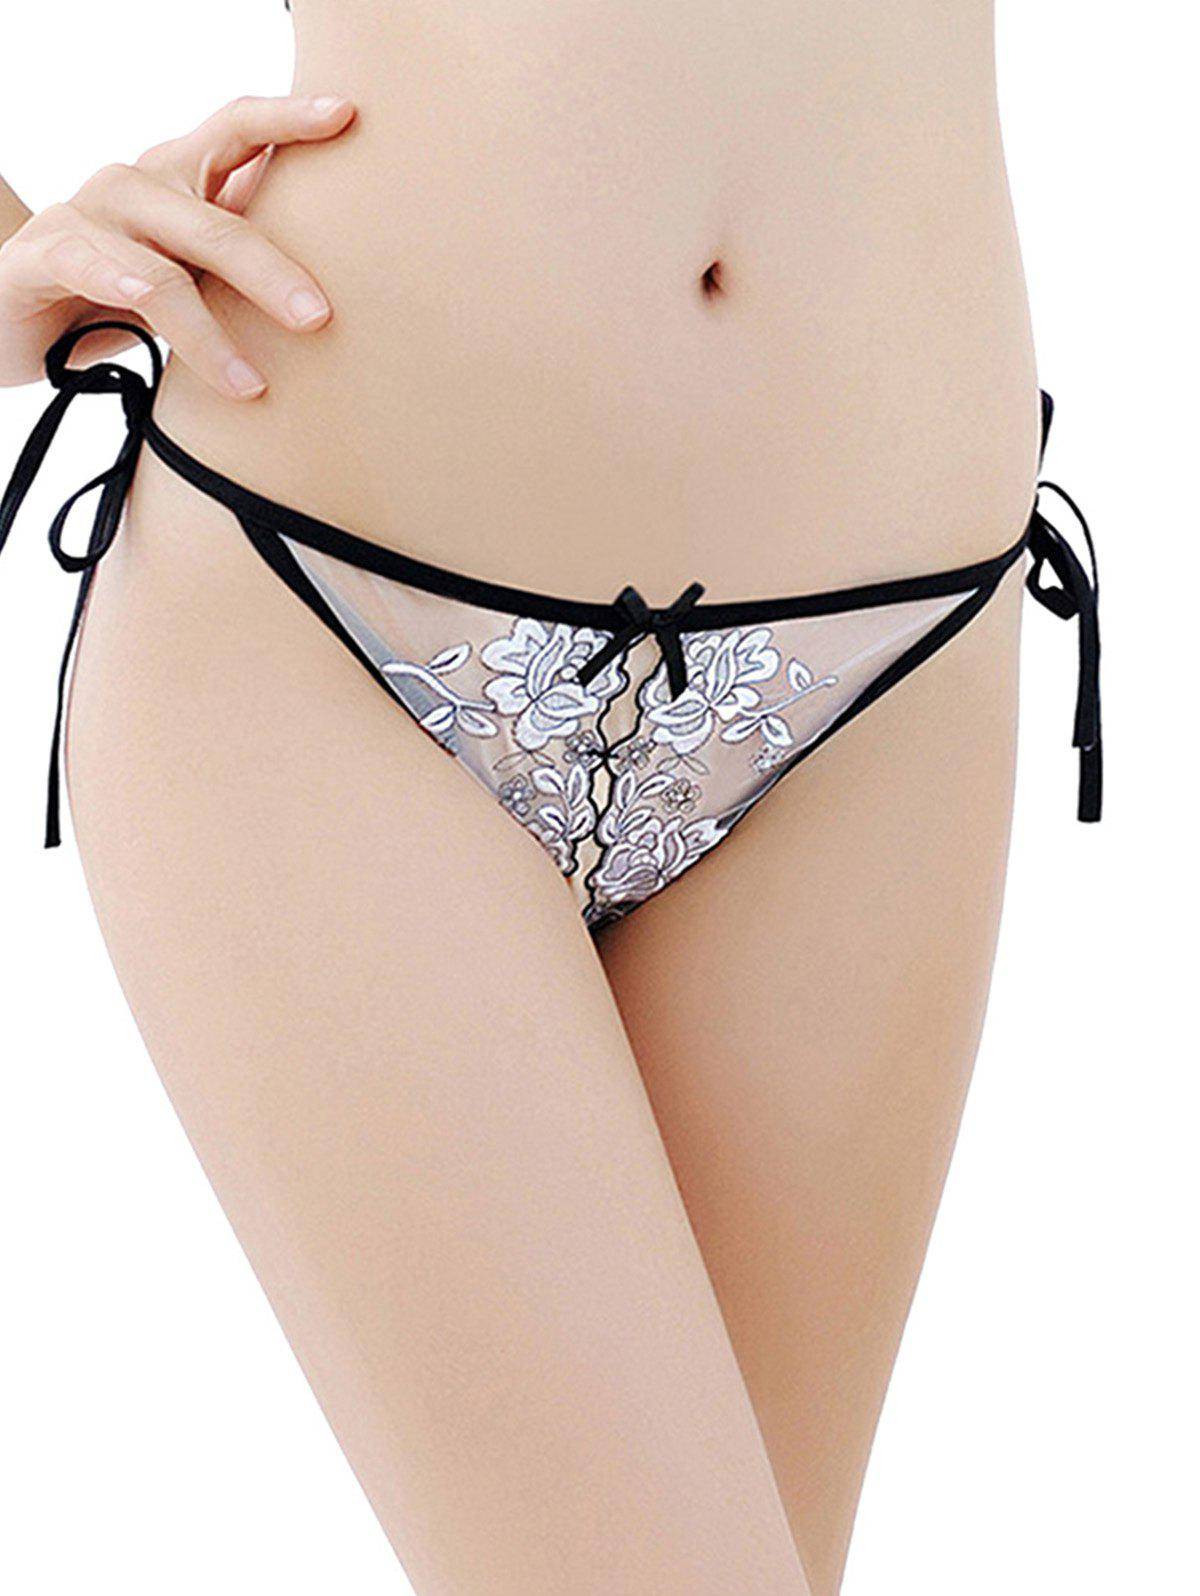 Shop Sexy Embroidered Lace-Up Placket Panties Underwear